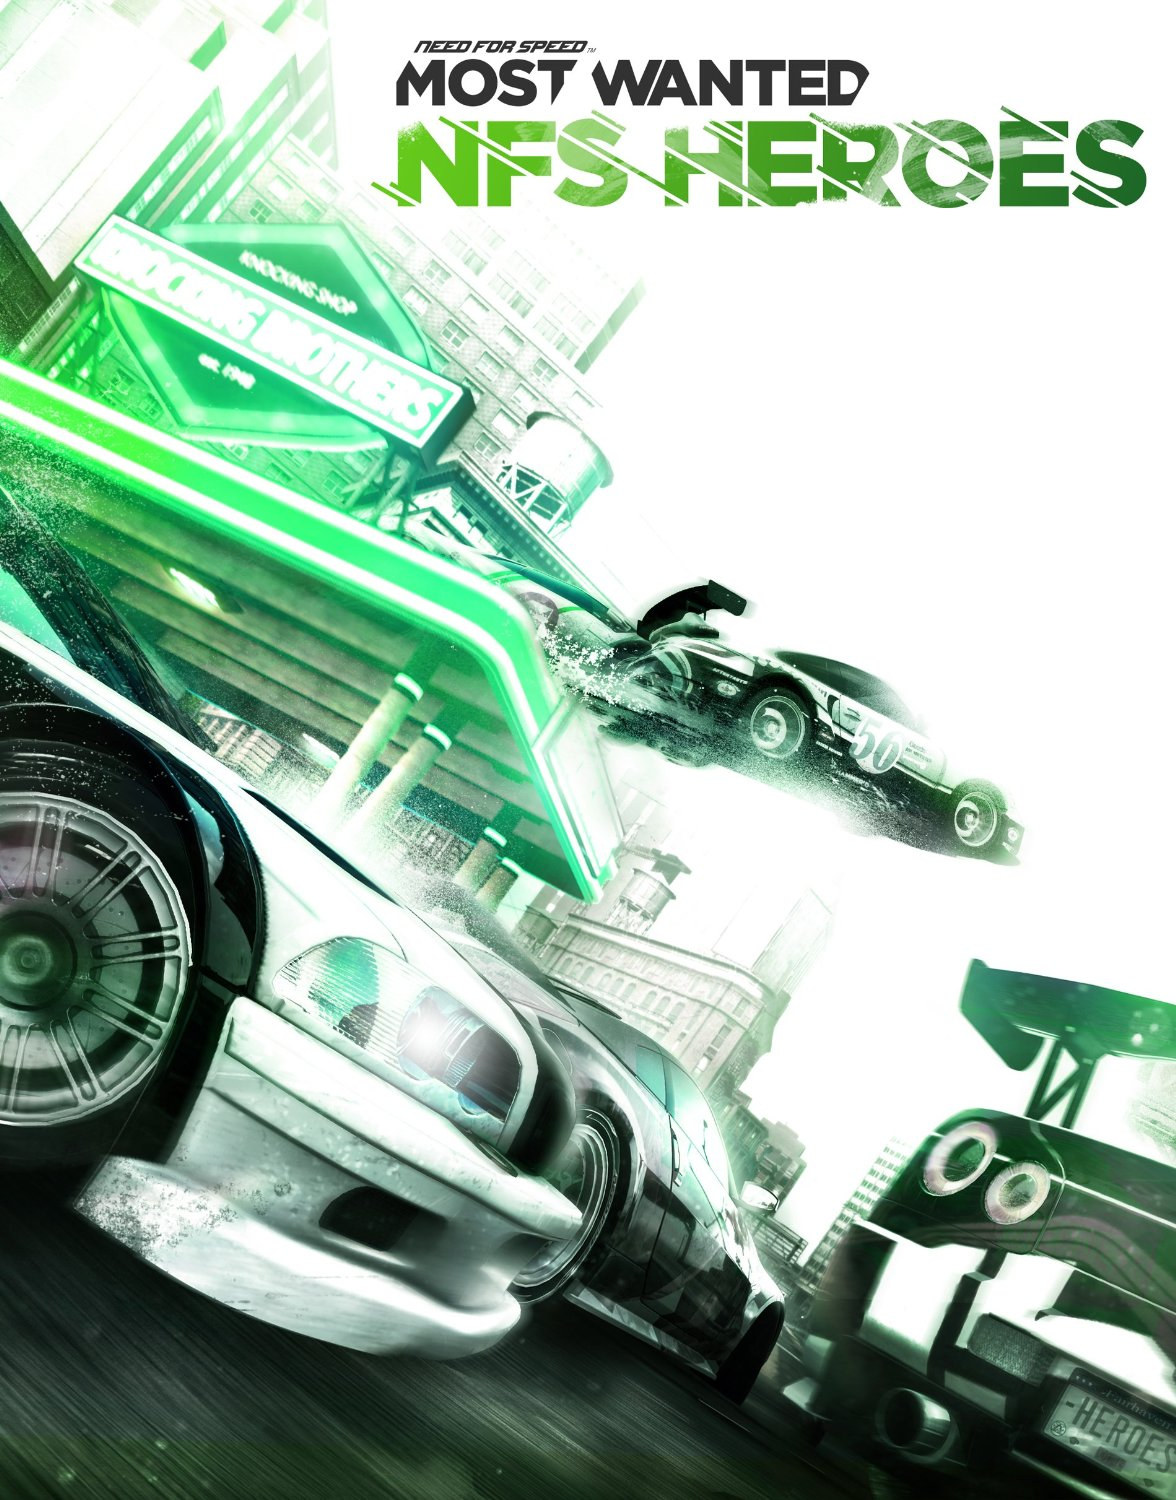 Need for Speed: Most Wanted (2012)/Need for Speed Heroes Pack